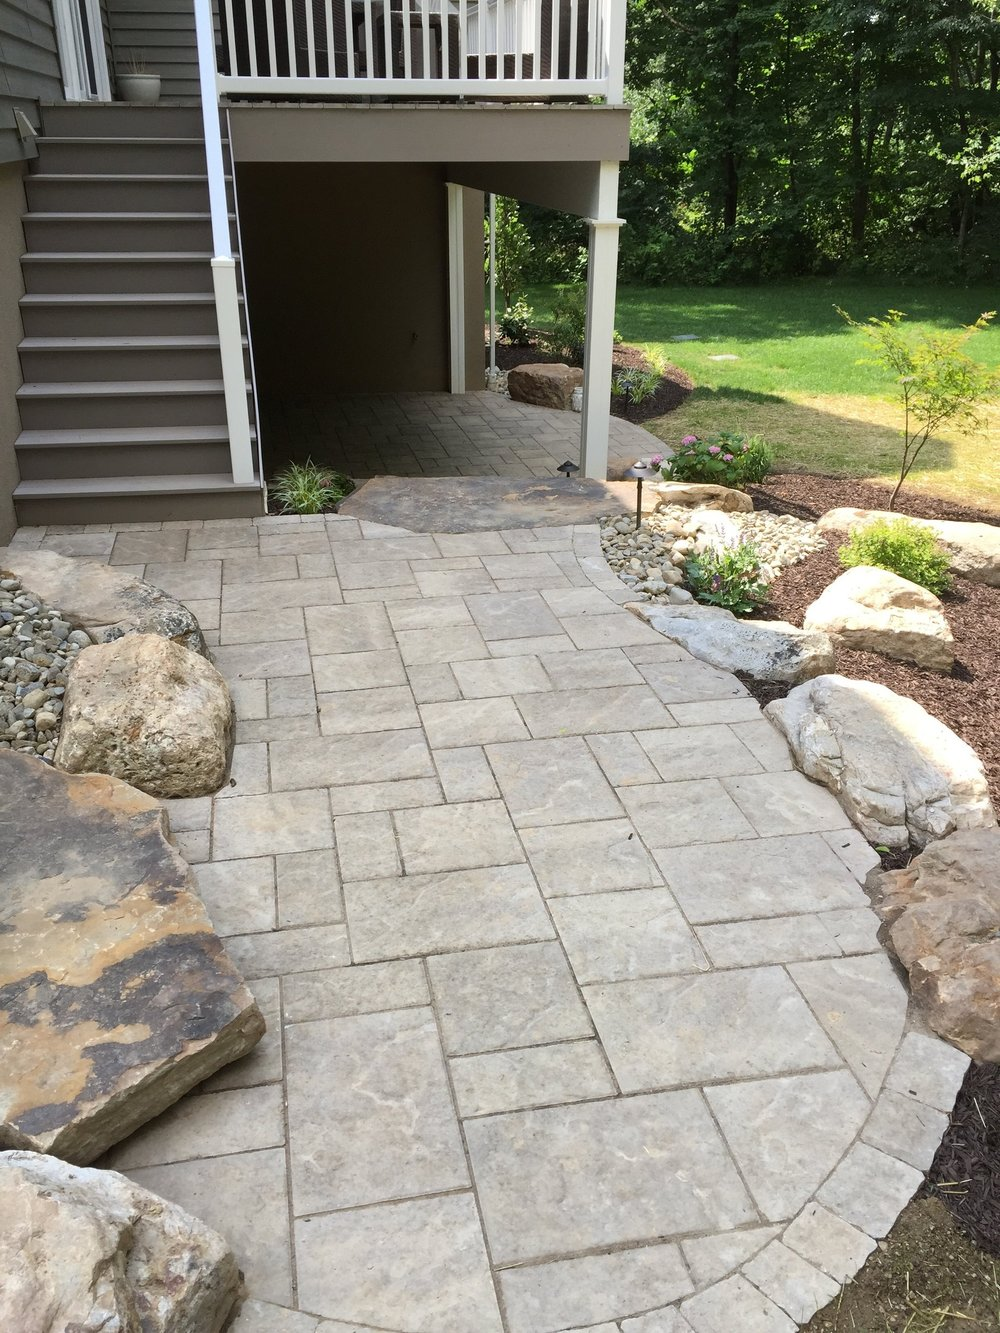 Experienced landscape patio design in Allentown, PA